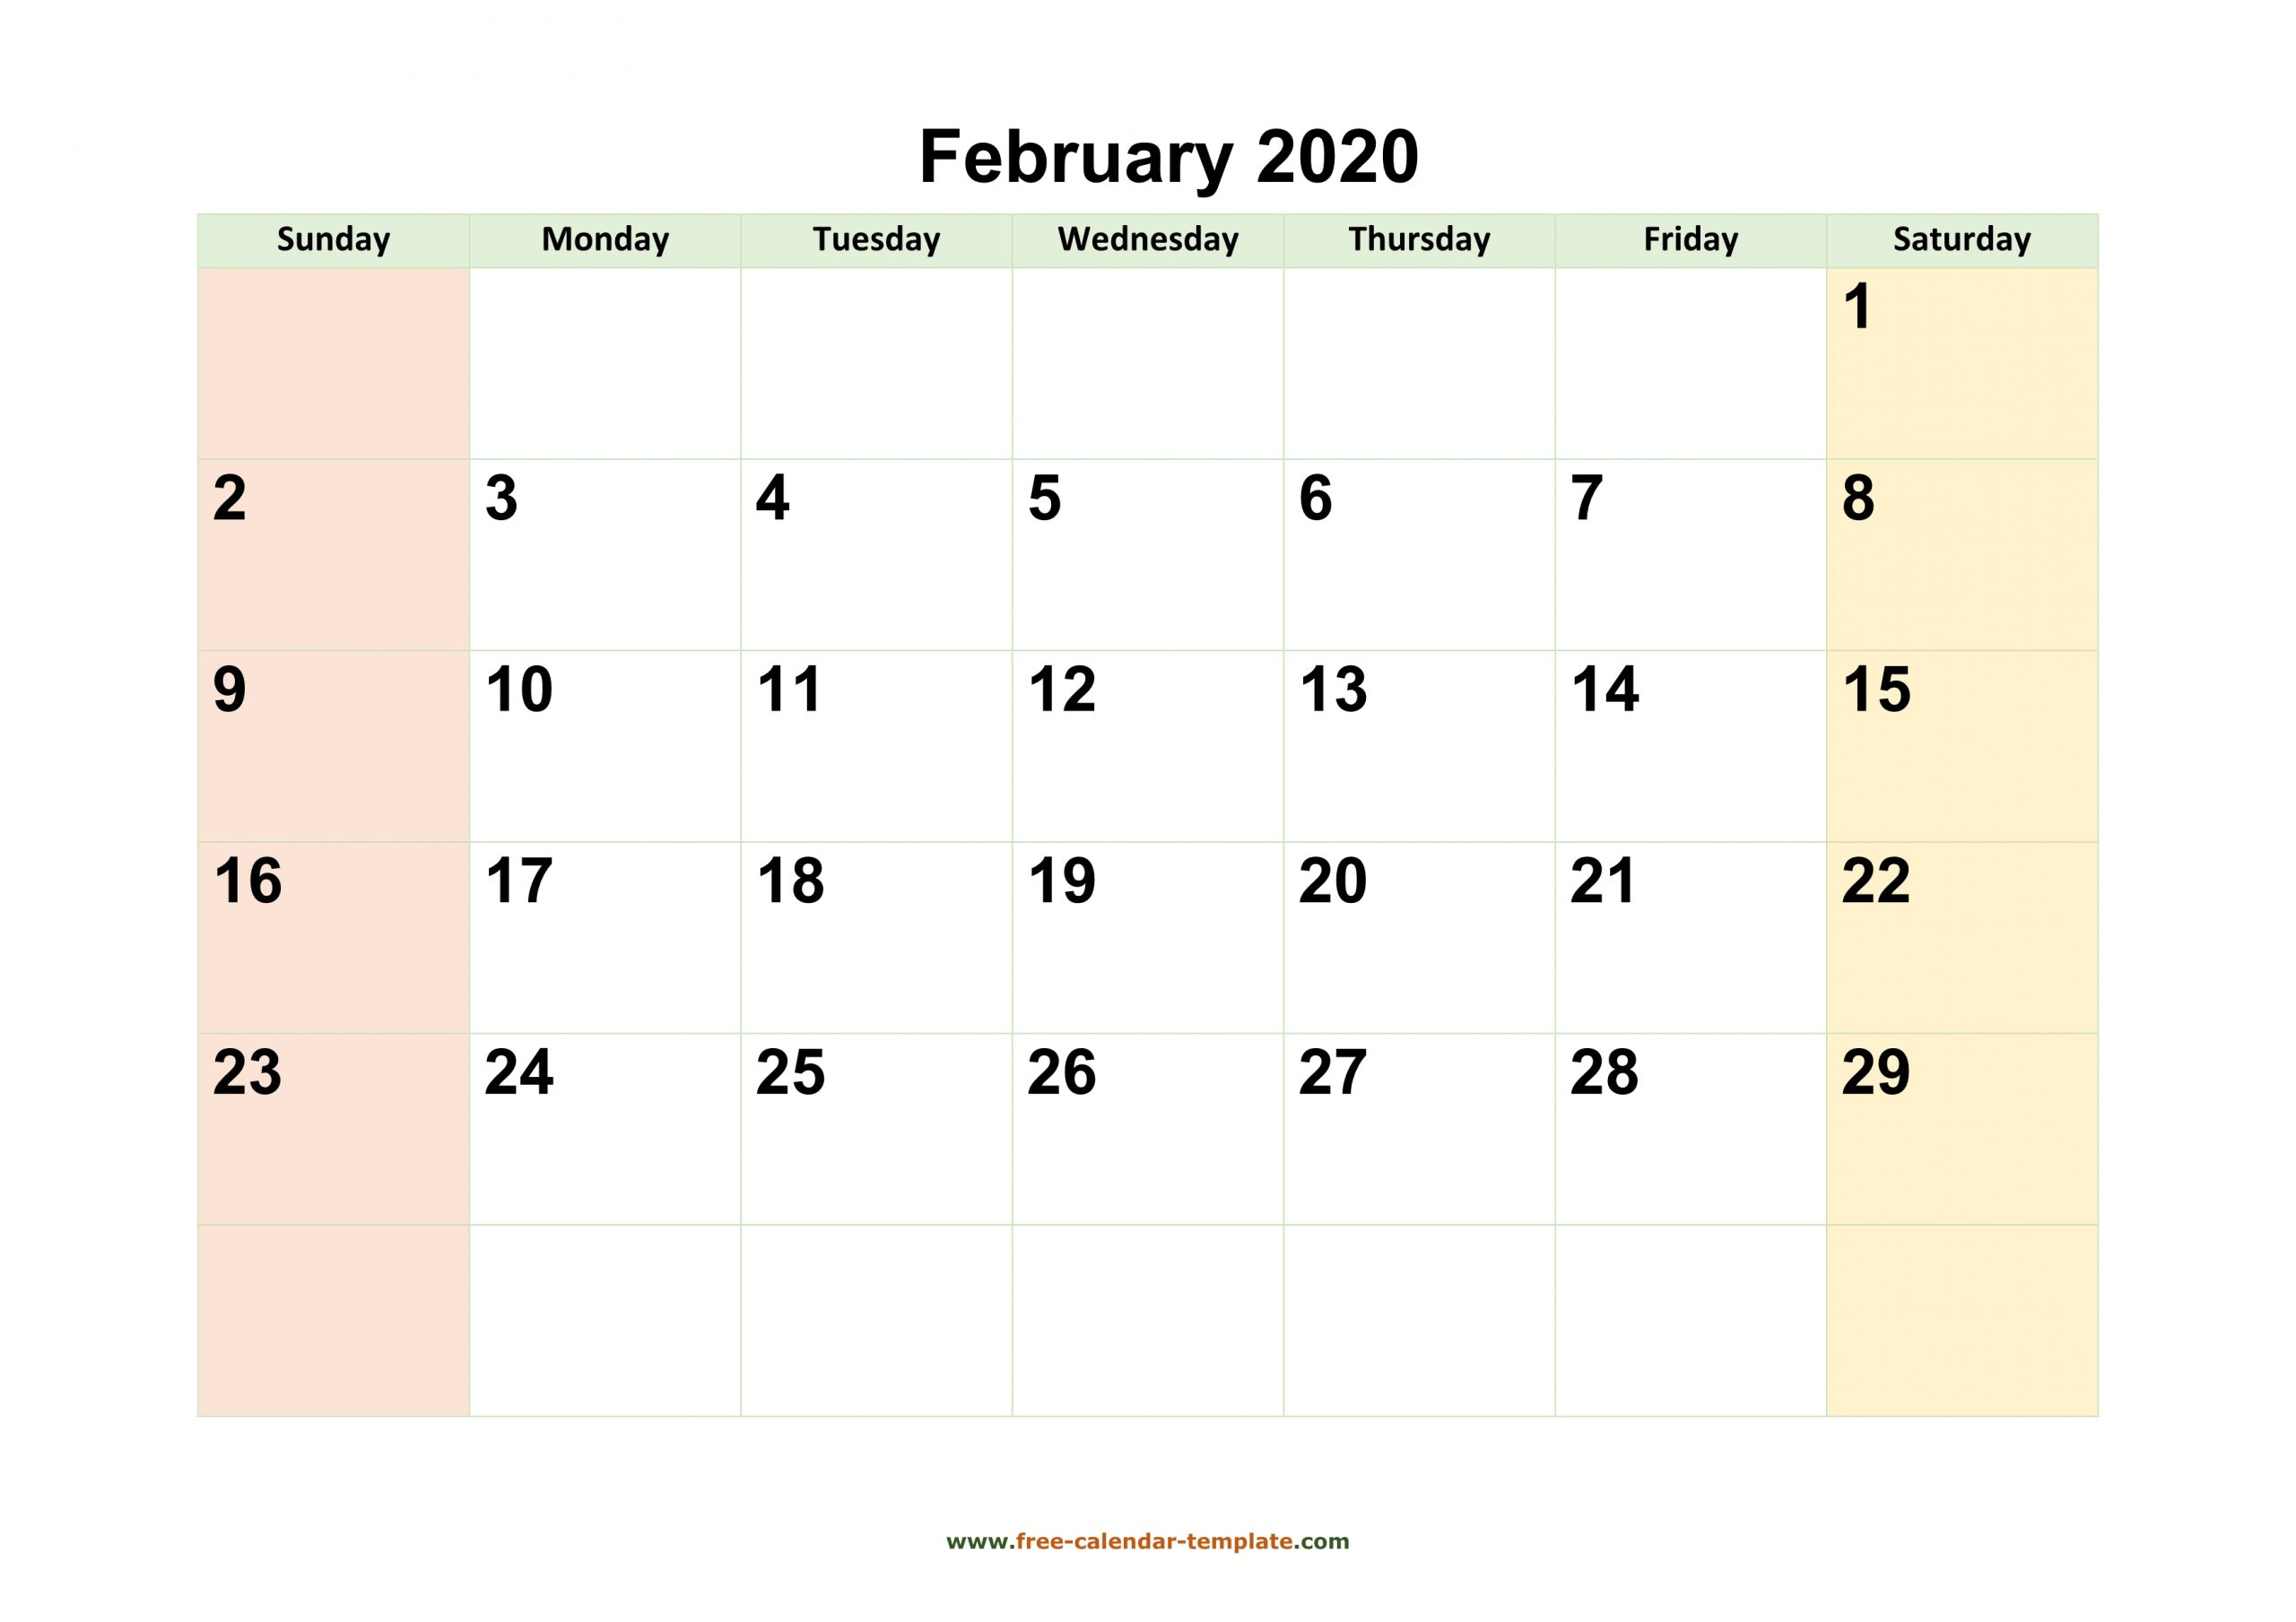 February 2020 Calendar Printable With Coloring On Weekend